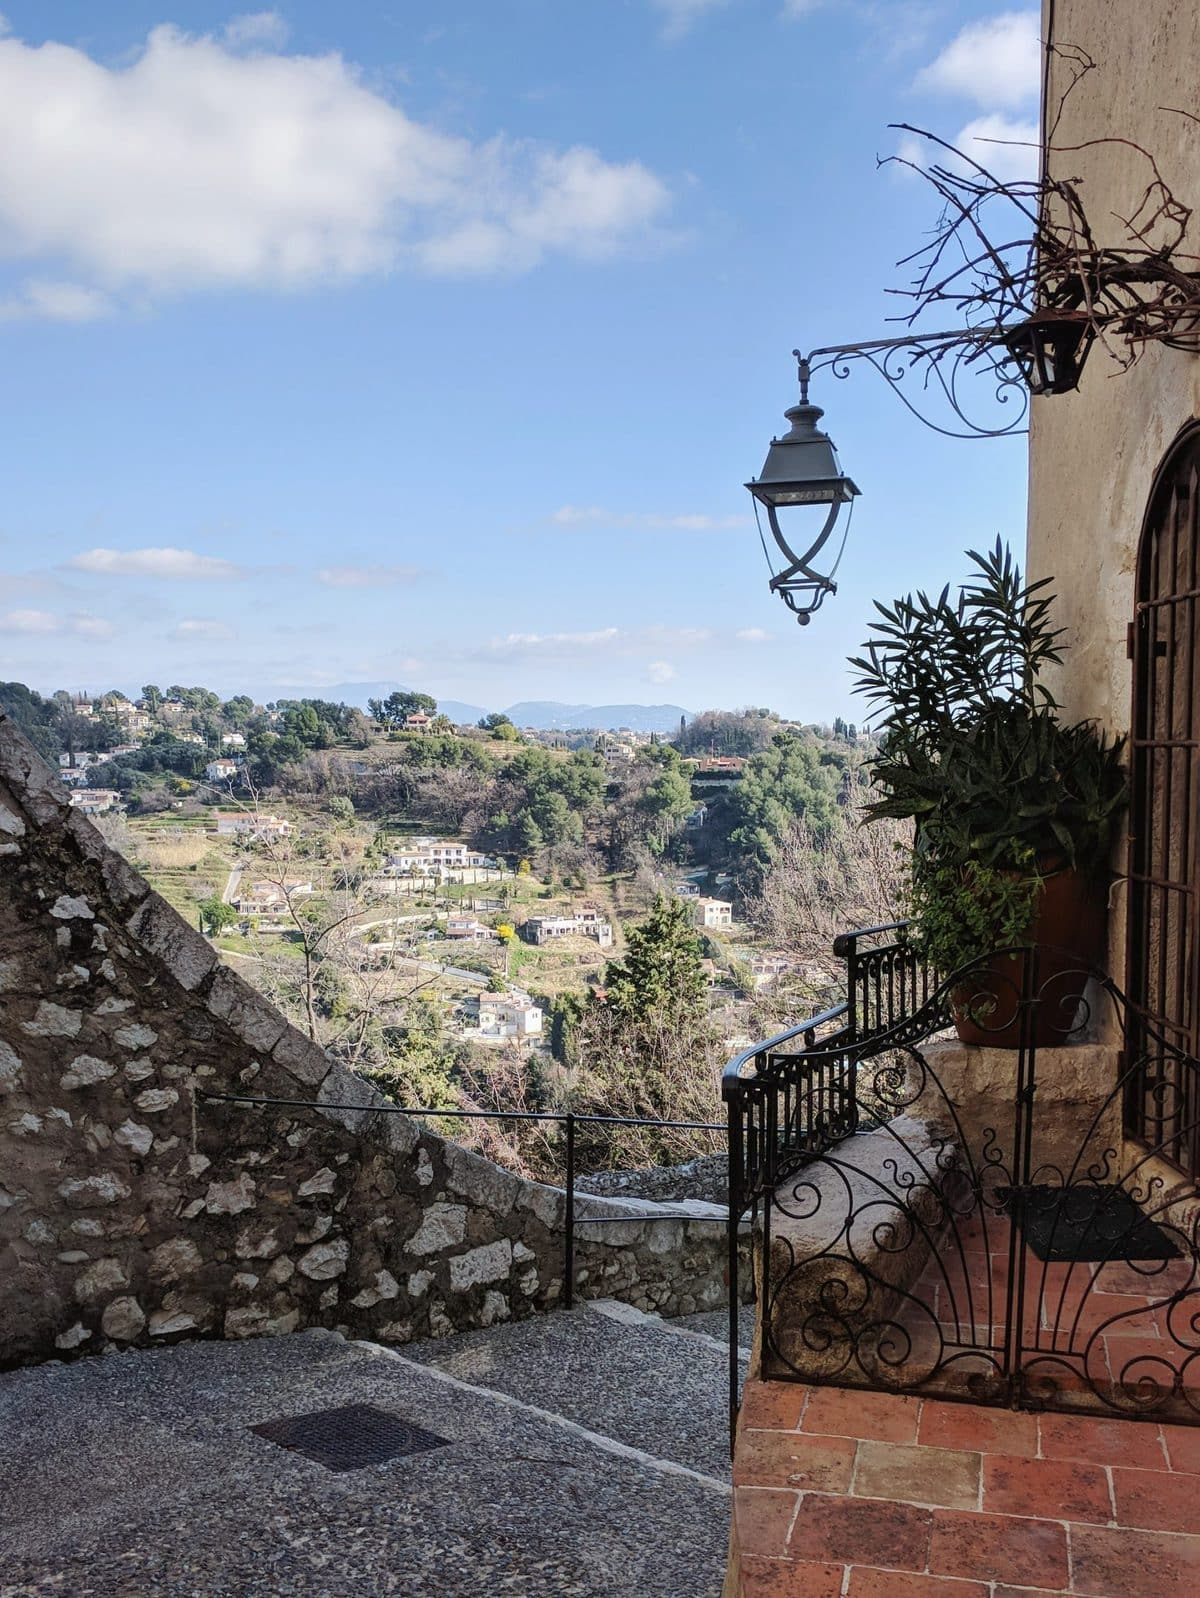 Hilltop view in Saint-Paul-de-Vence